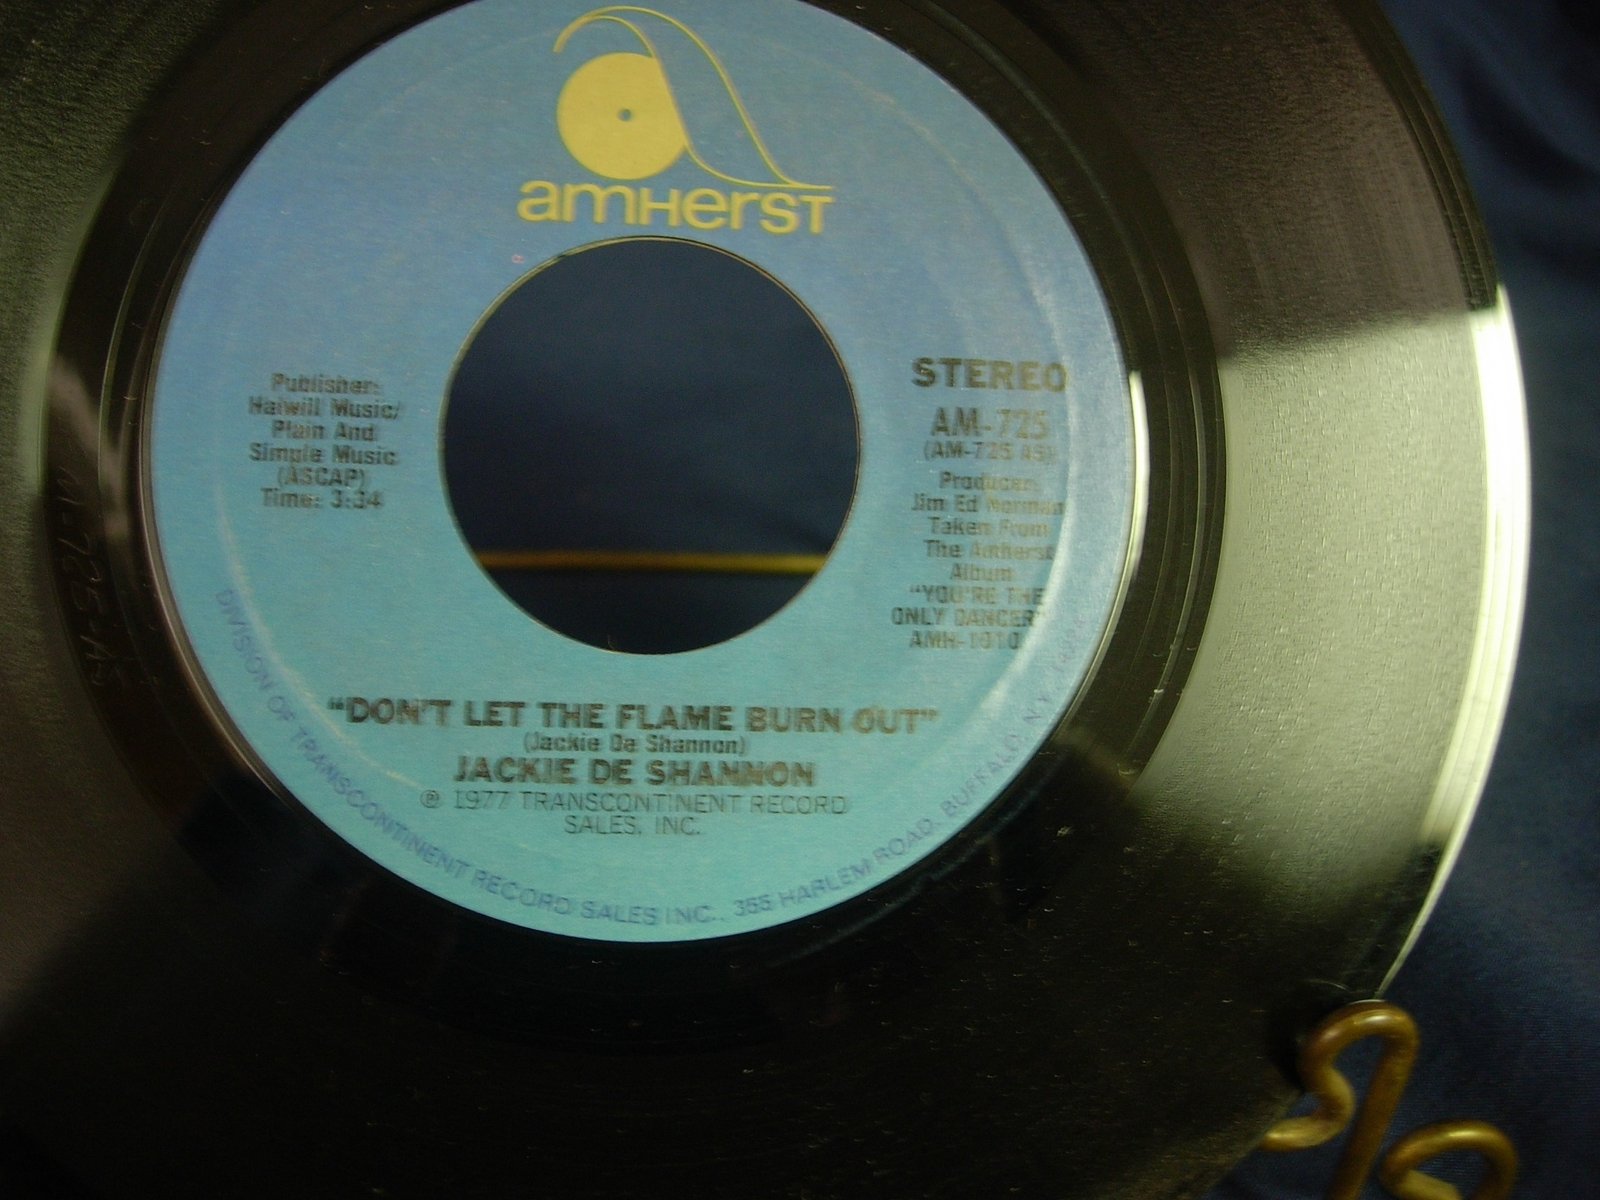 Jackie De Shannon - Don't Let the Flame Burn Out / I Don't Think - Amherst AM725